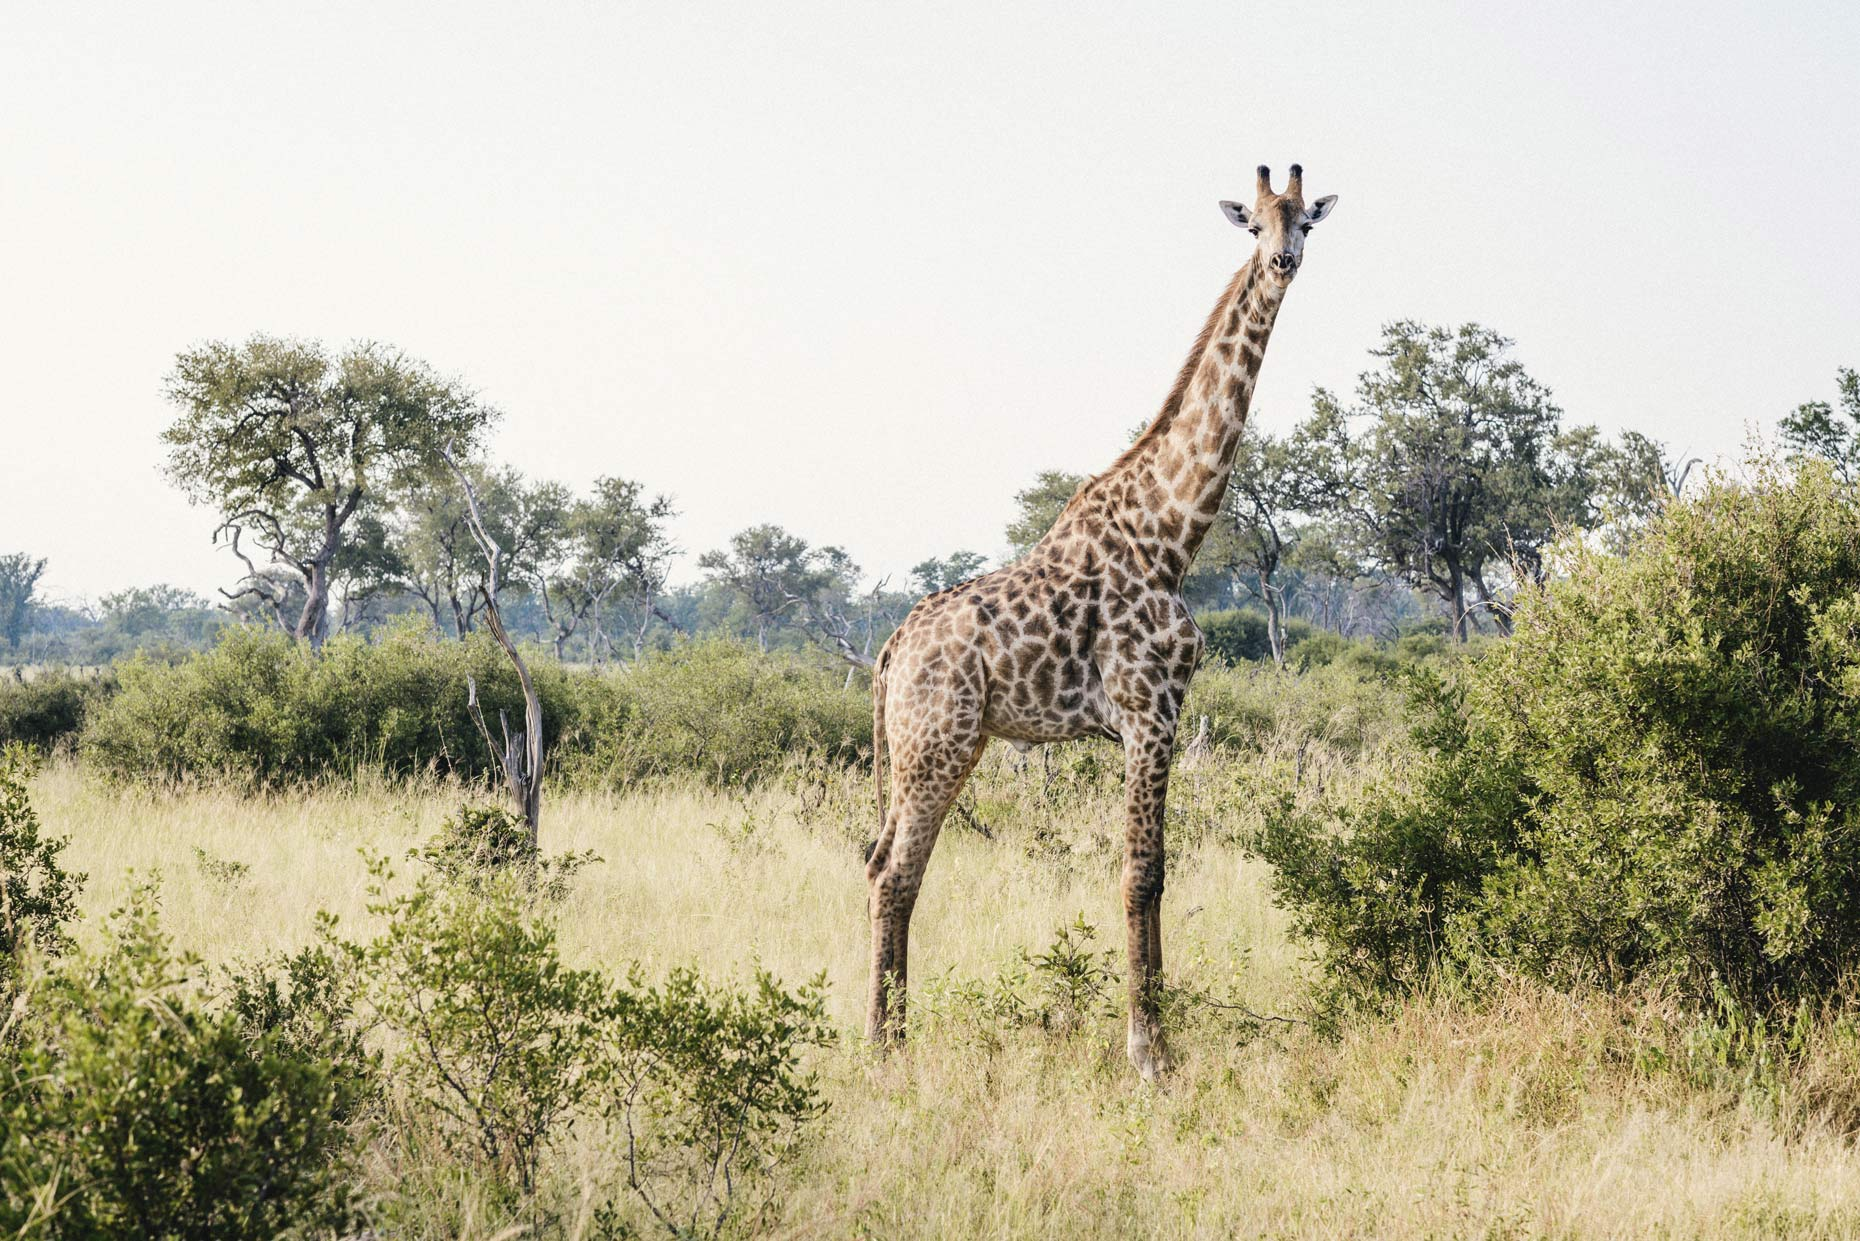 Large-giraffe-standing-tall-amongst-bushes